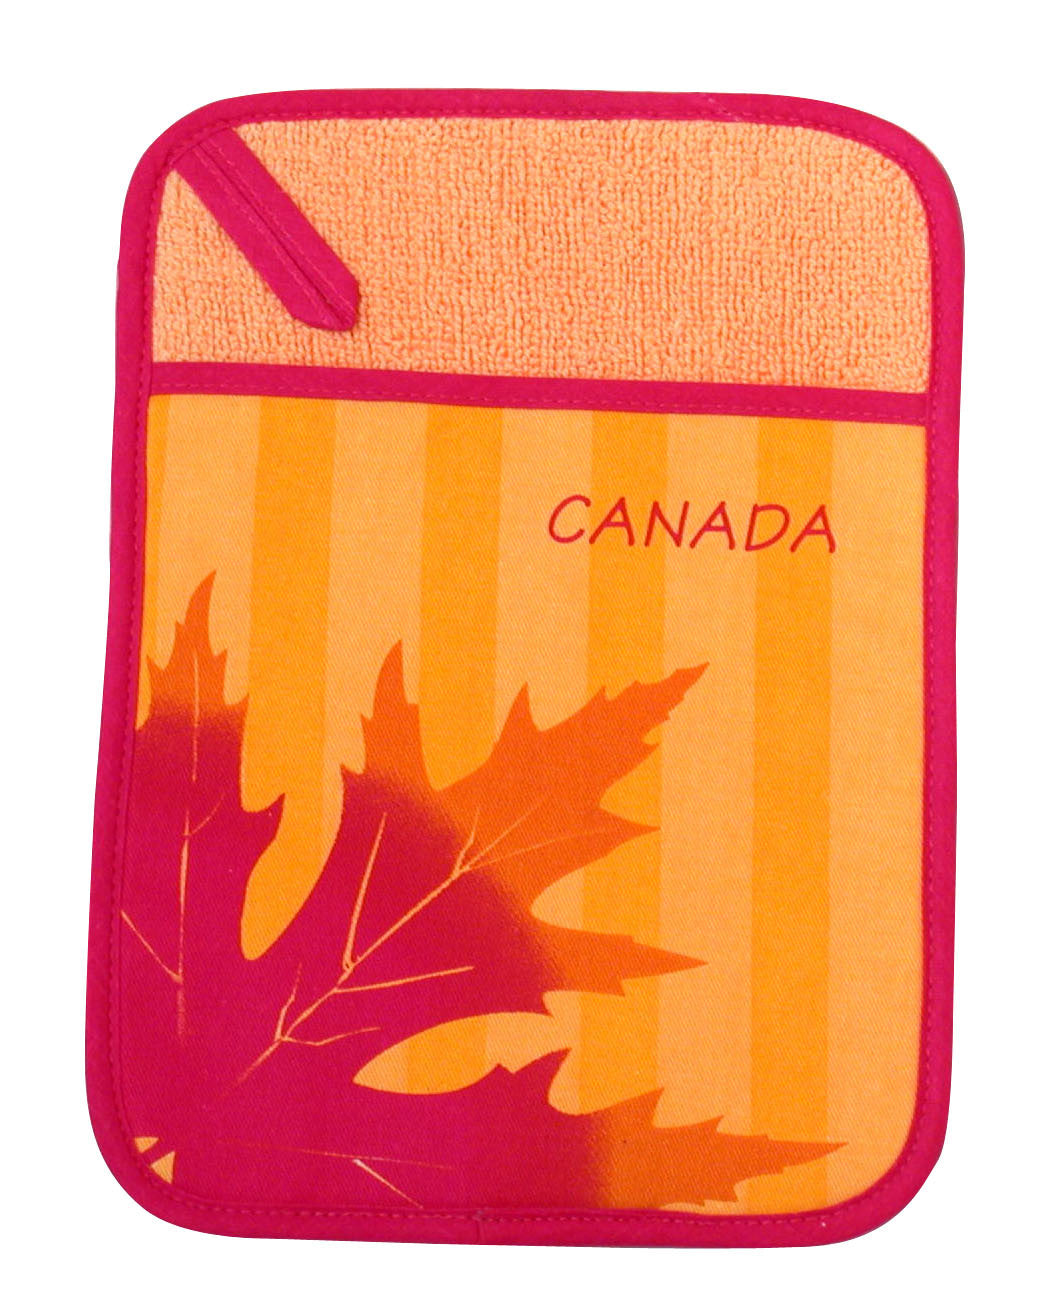 Maple Leaf Silhouette Pot Holder